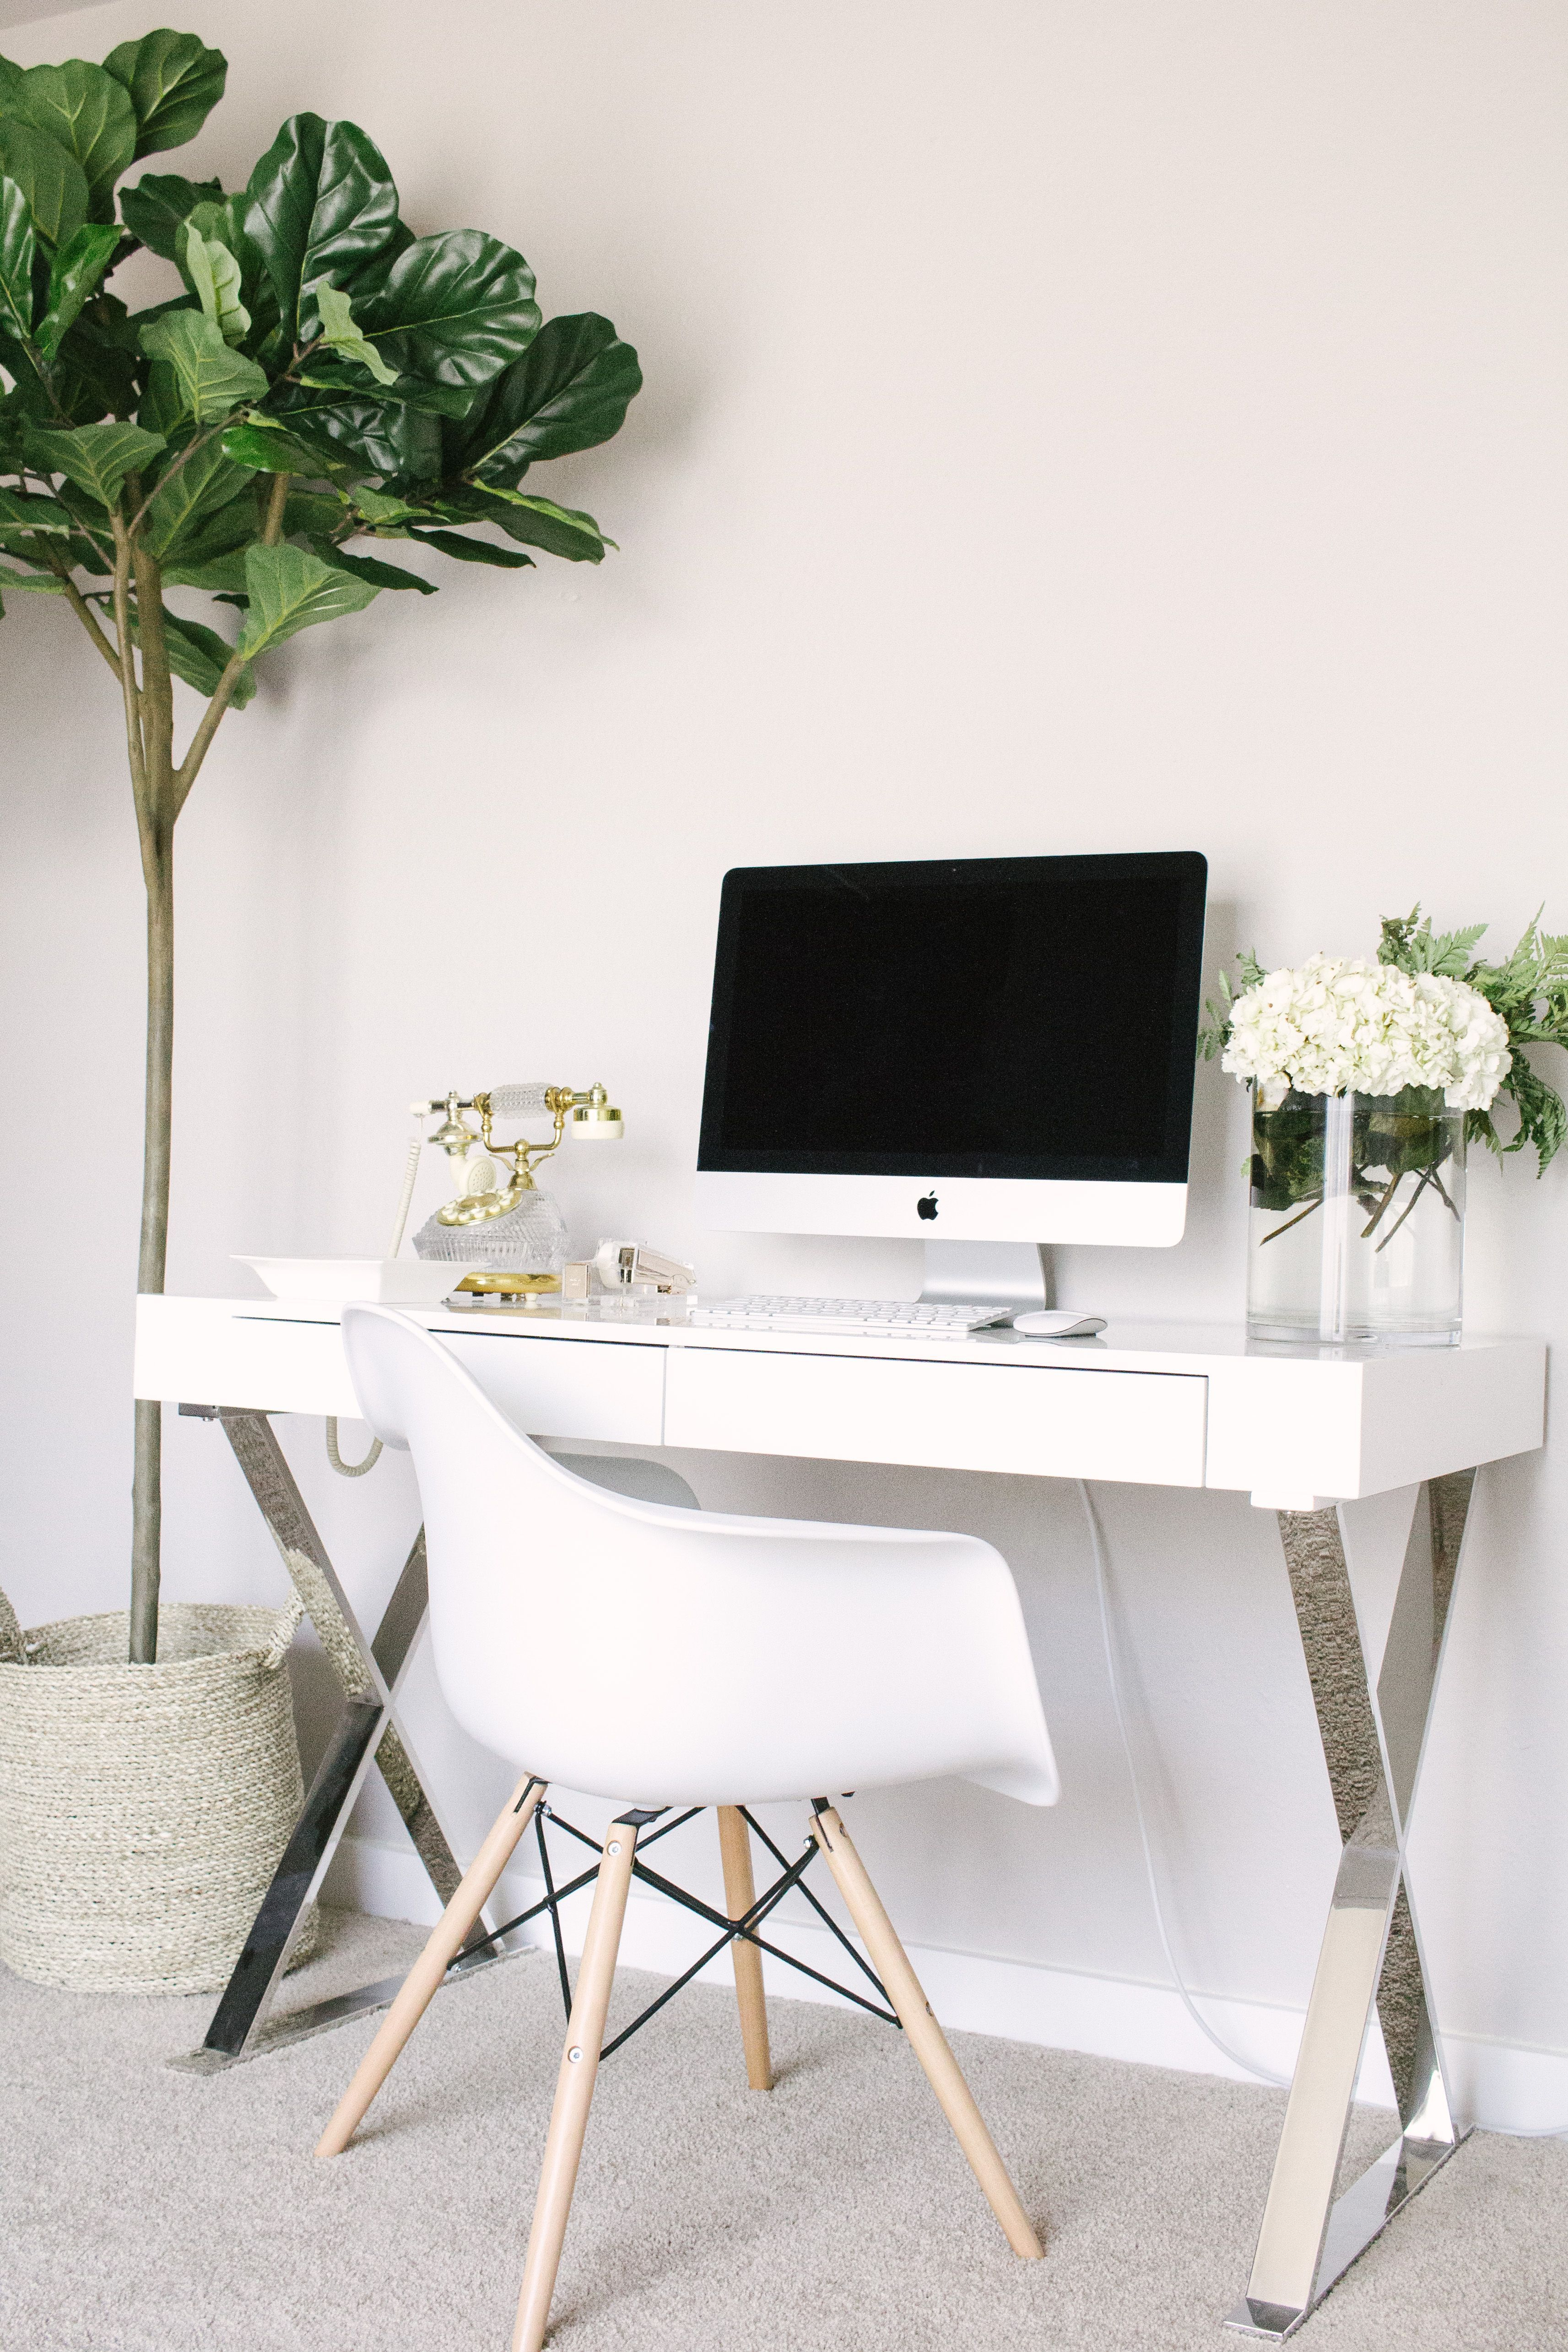 Love The Pop Of Greenery Office Space Work From Home Home Office Home Inspiration House Living Space R In 2020 Home Office Furniture Home Office Design Home Decor